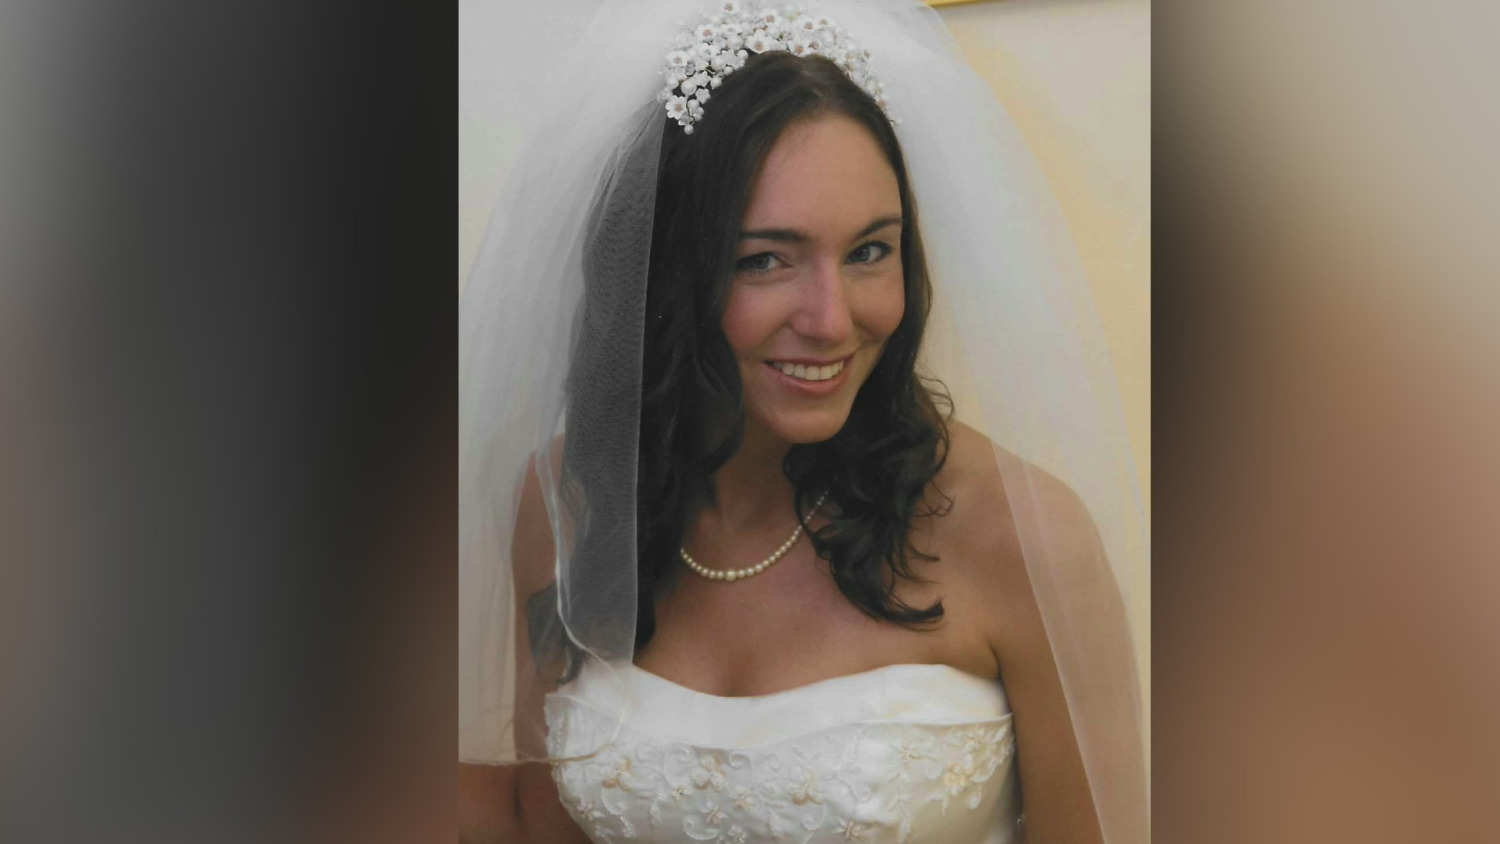 wedding-dress-mix-up-discovered-14-years-later